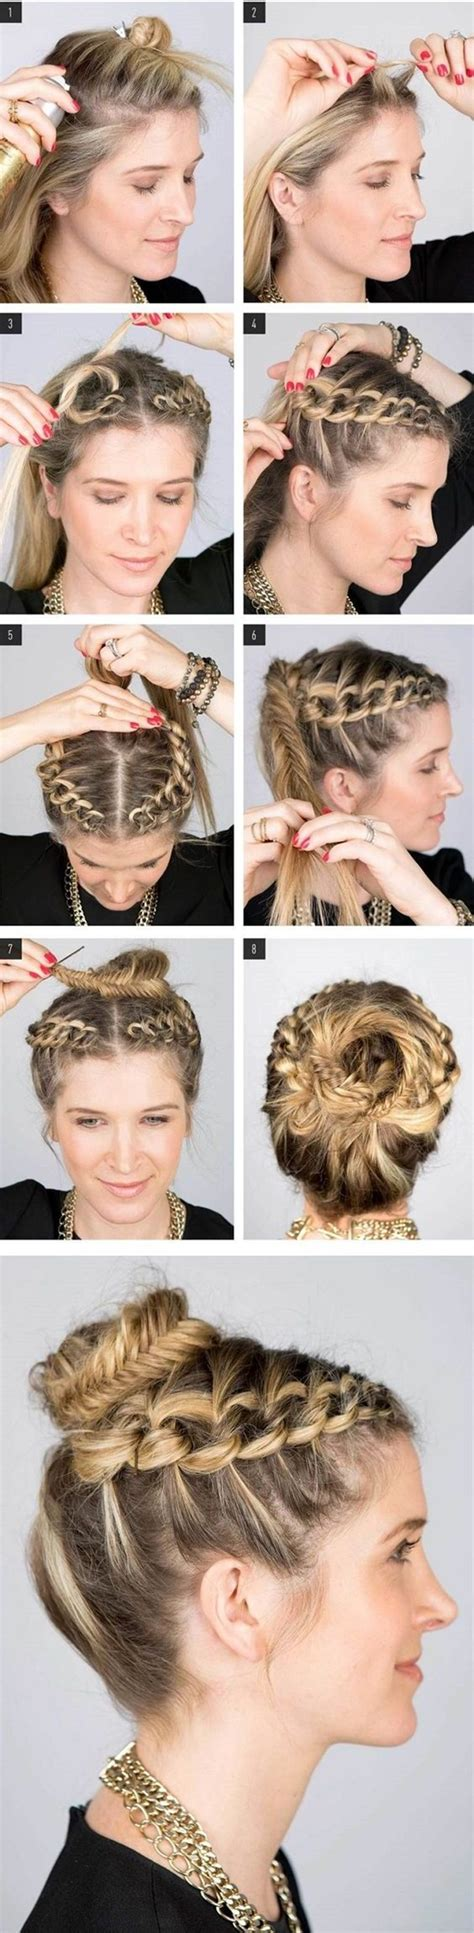 Hairstyles For Hair Step By Step Easy by 40 Easy Step By Step Hairstyles For